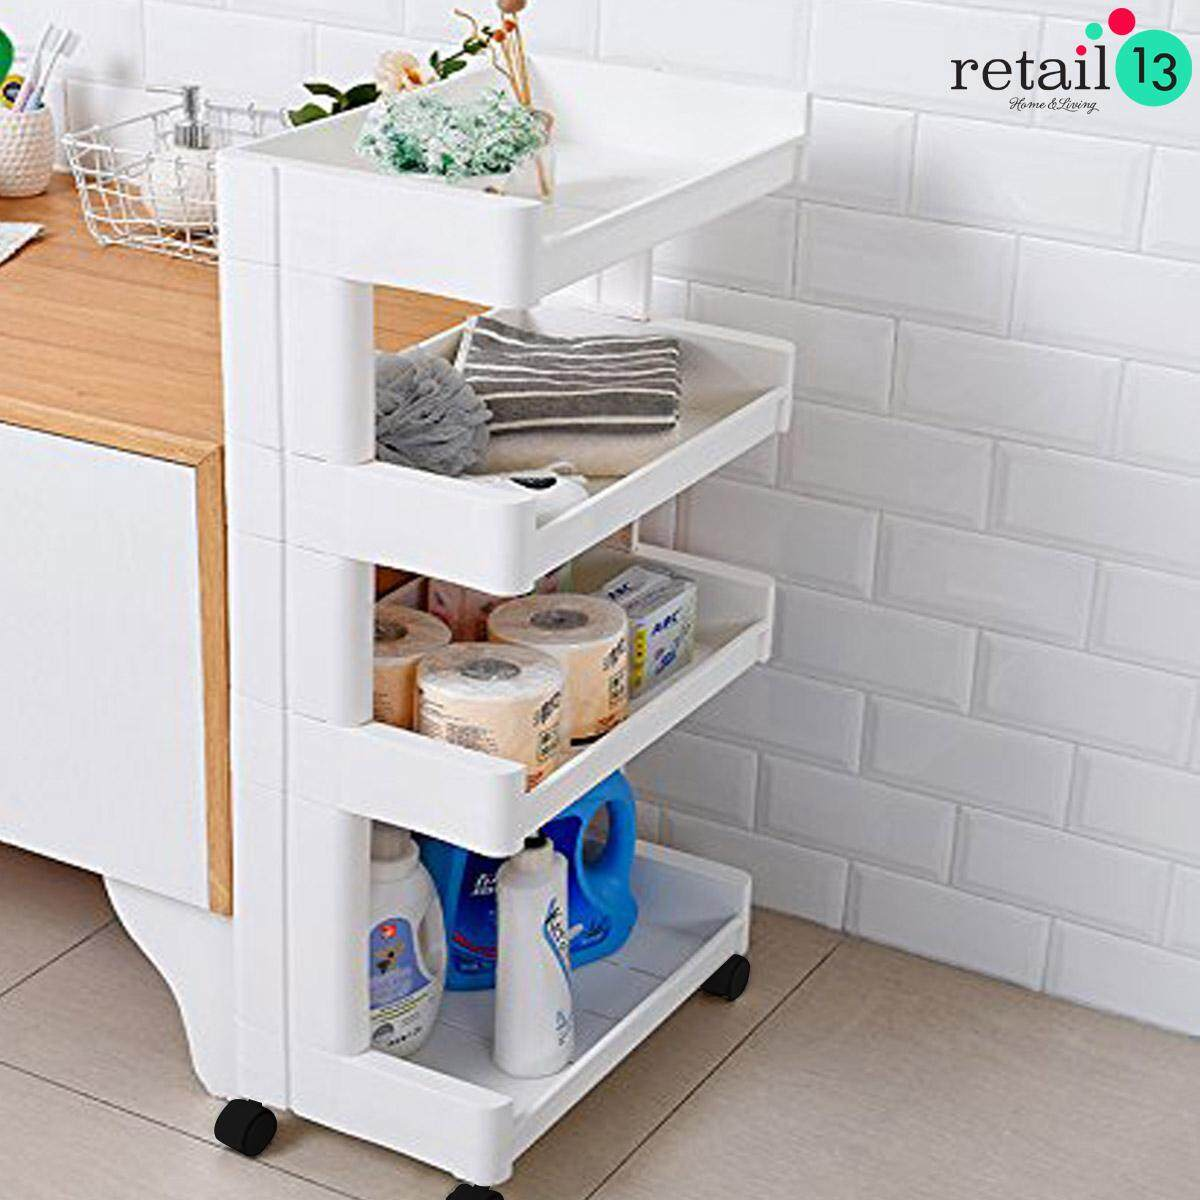 High Quality 4 Tier Multipurpose Storage Rack Shelf With Wheels Design (white) By Retail13.